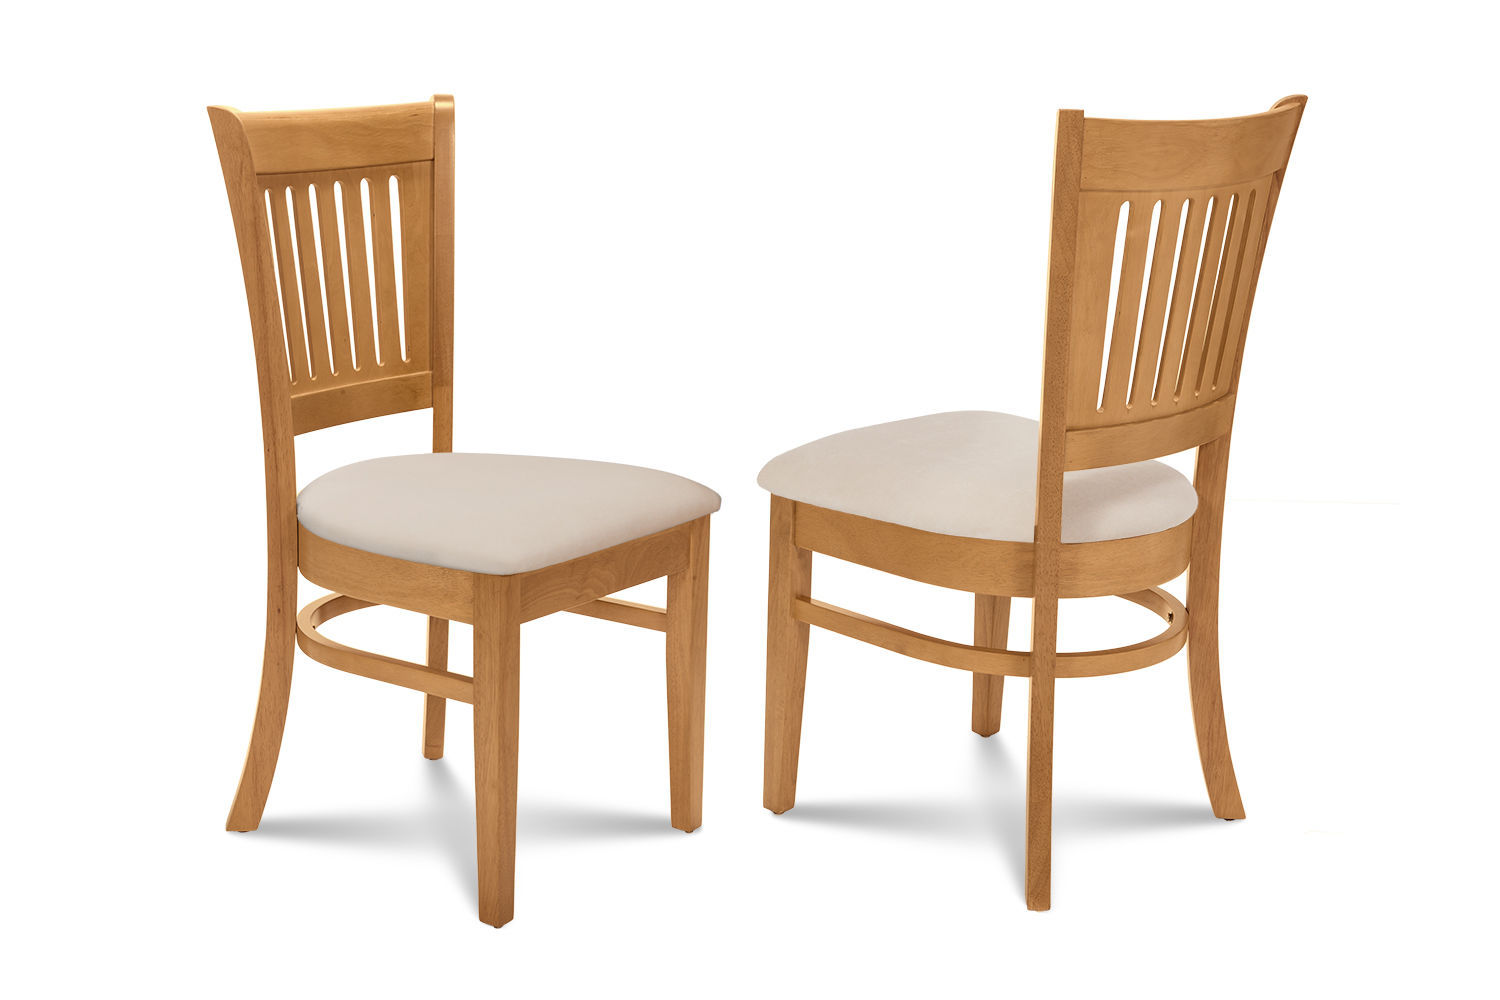 SET OF 6 KITCHEN DINING CHAIRS WITH WOODEN SEAT IN OAK FINISH